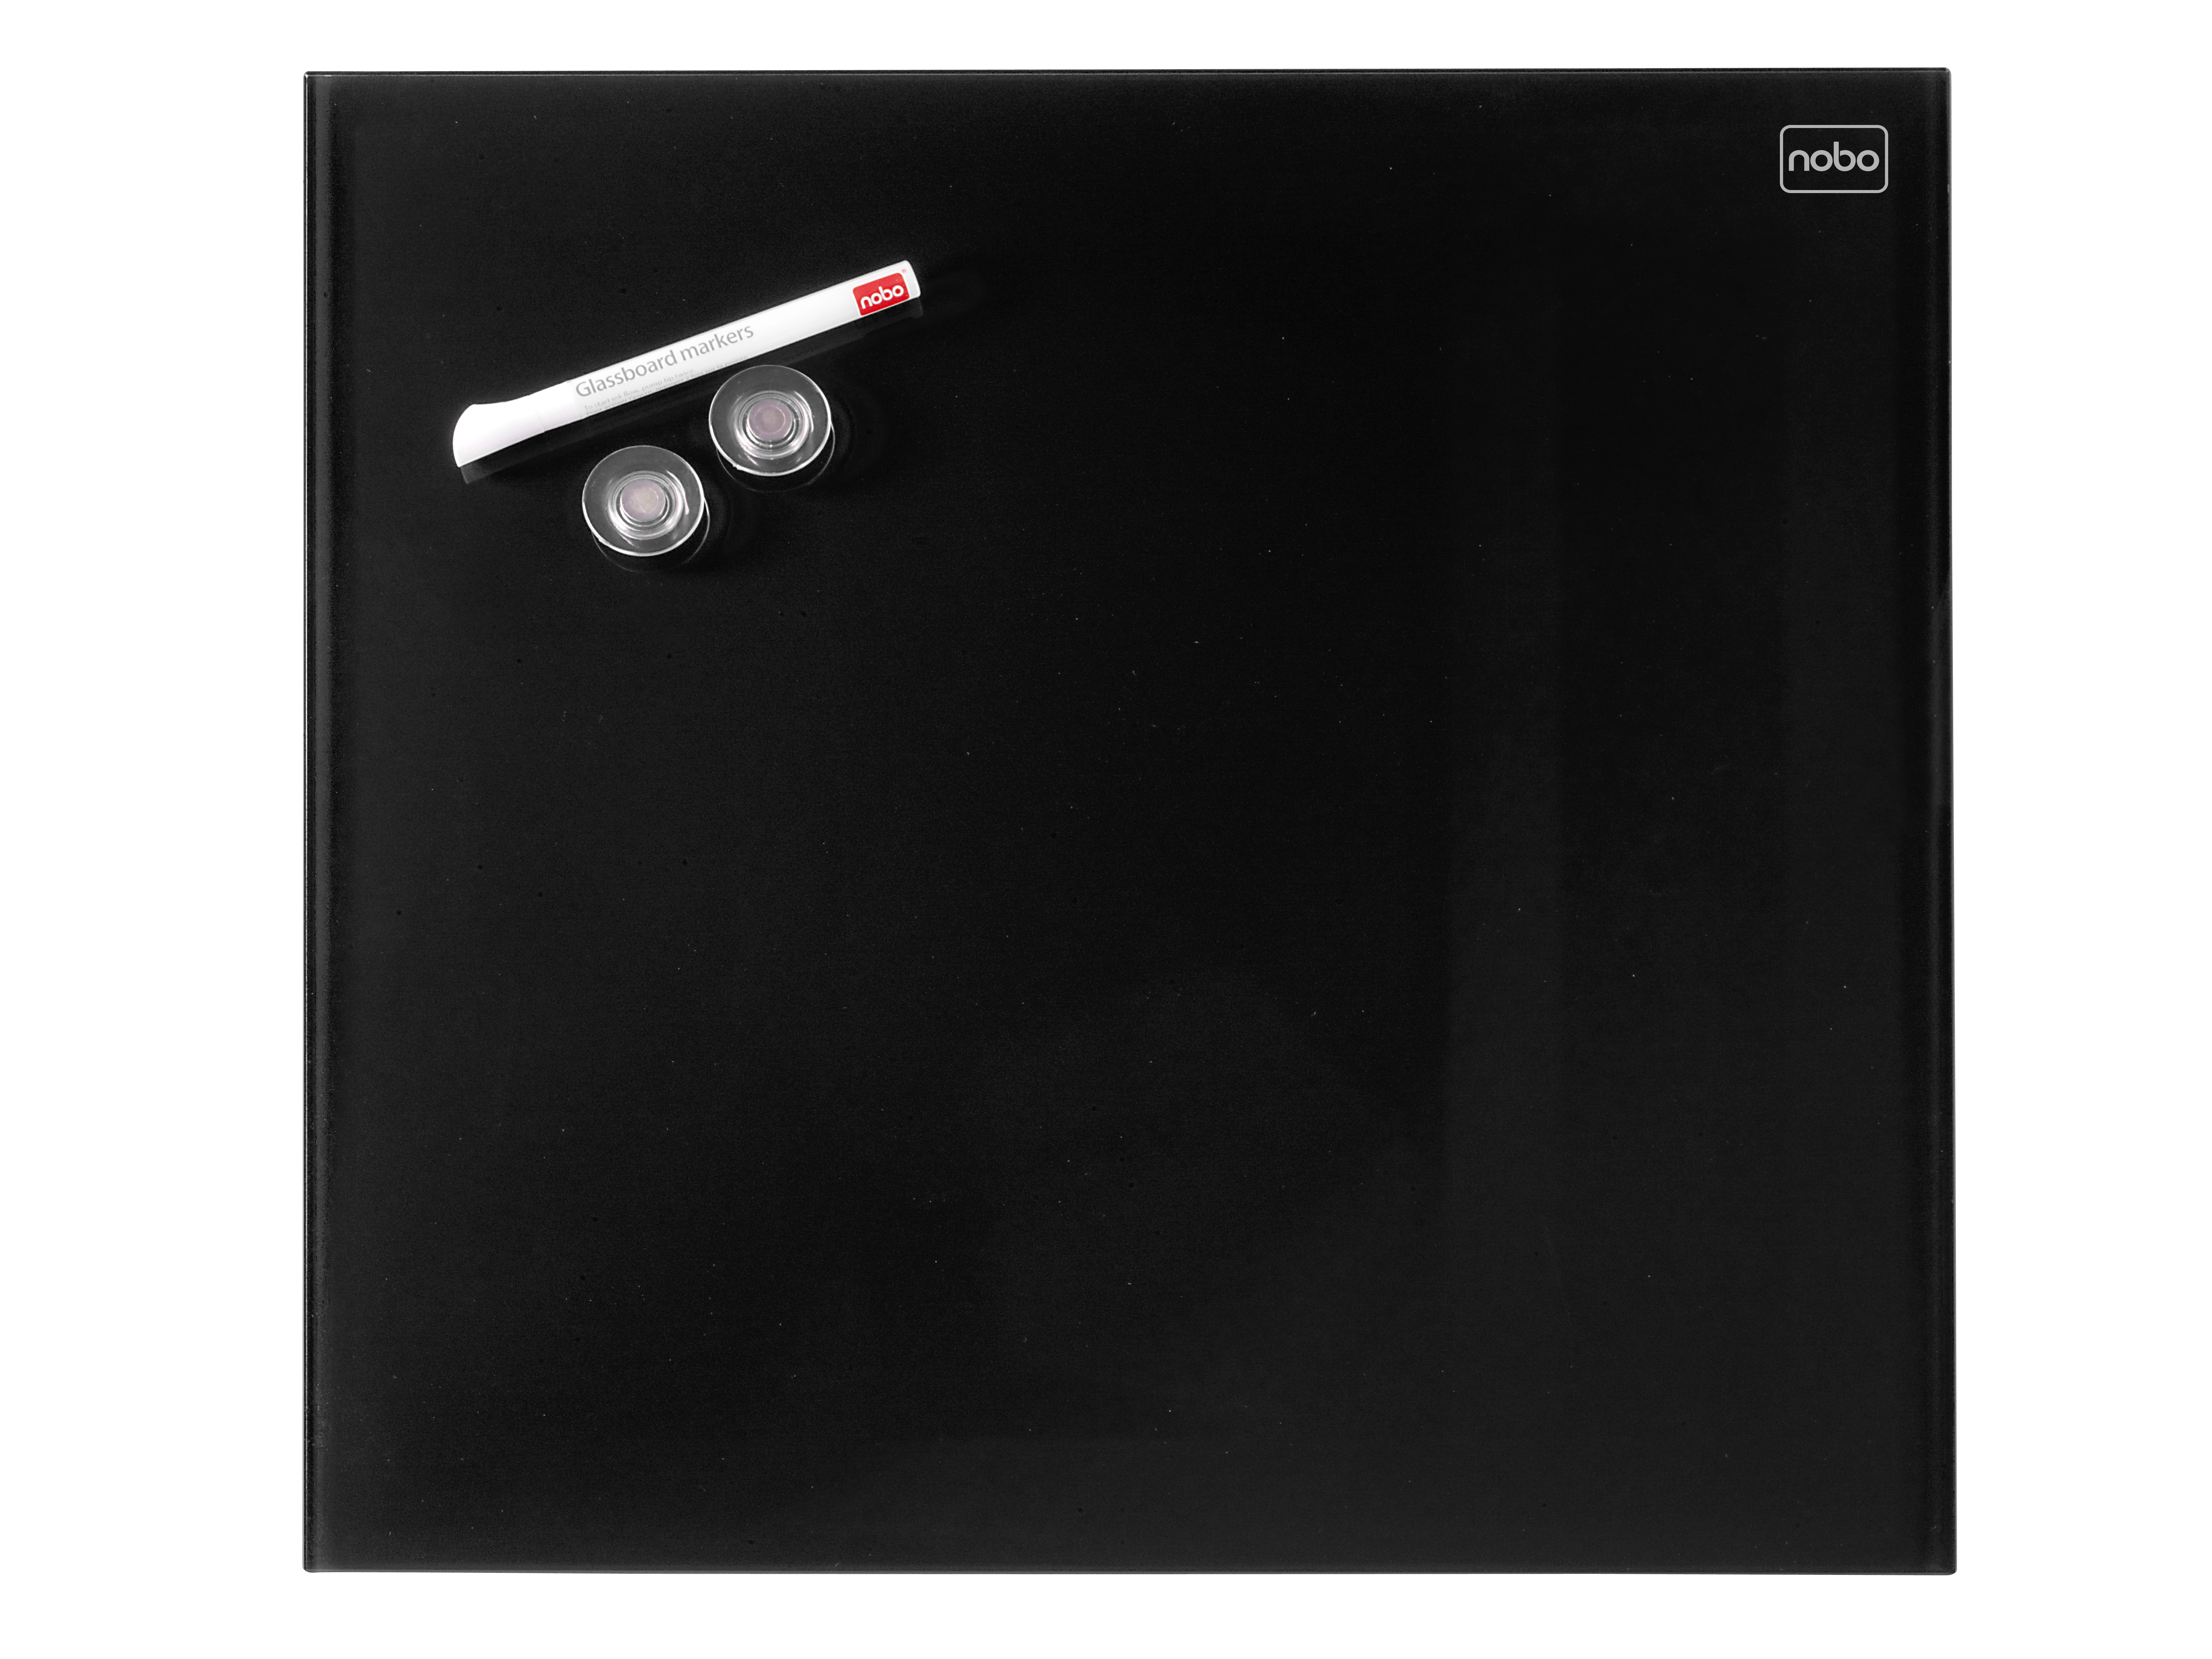 acco Nobo Diamond Drywipe Board Magnetic 300x300mm Black Dd 1903950 - AD01